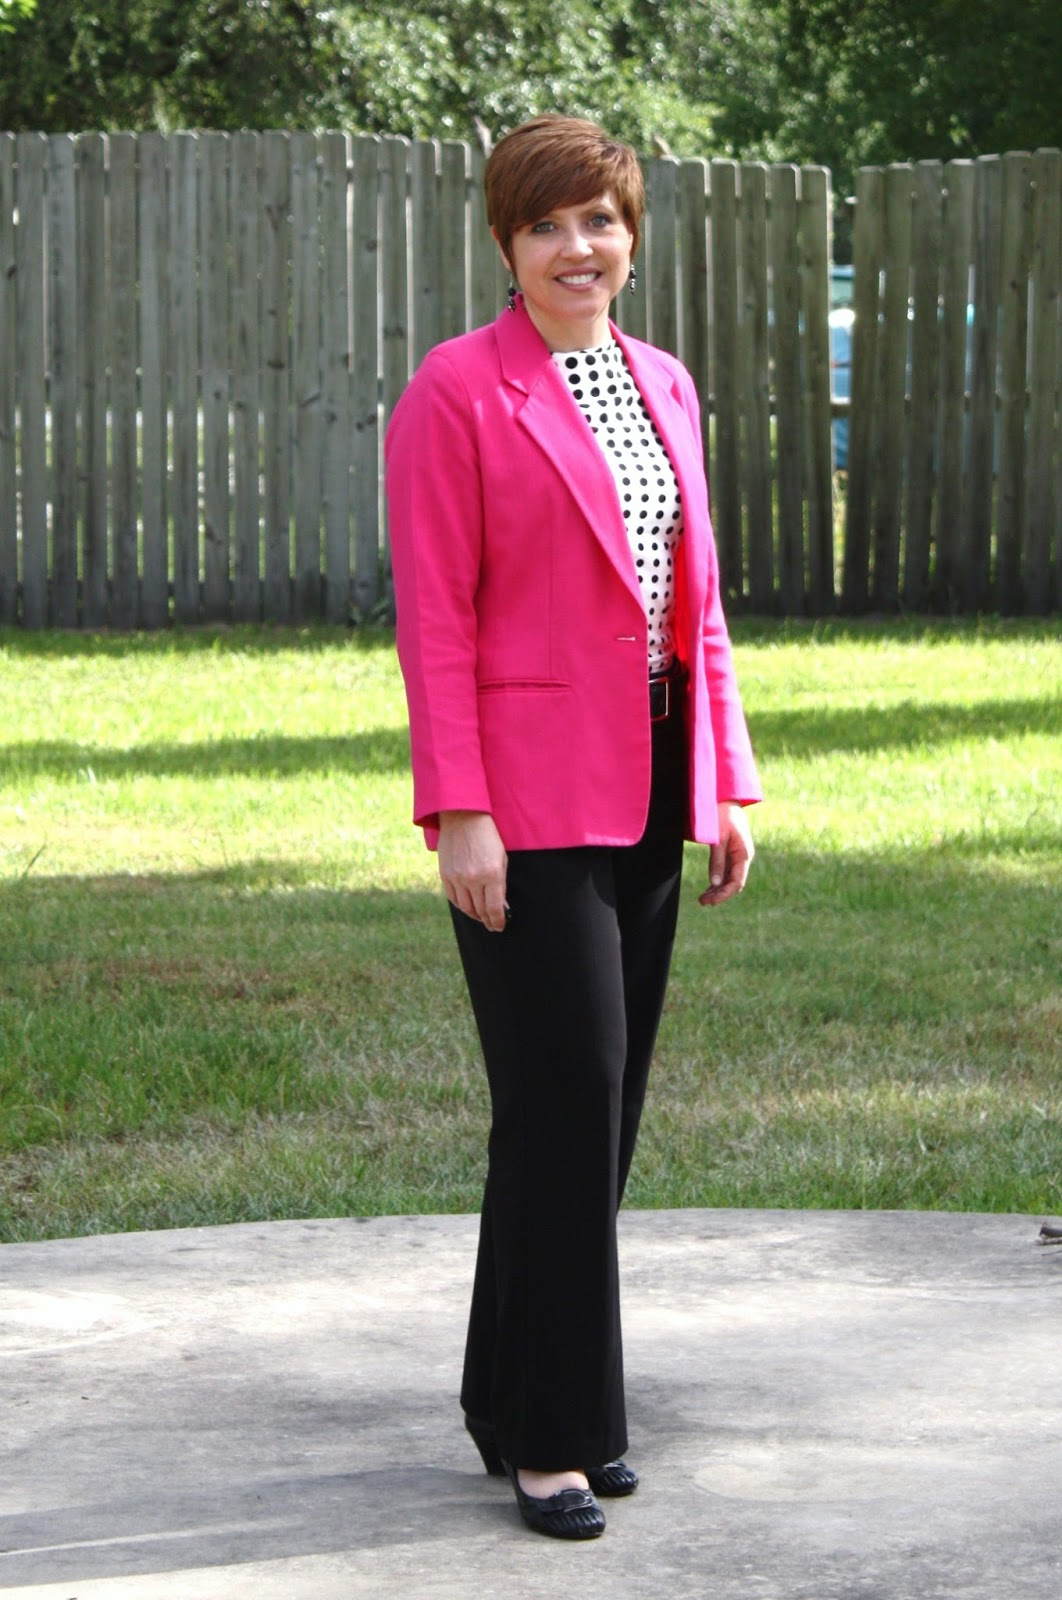 Savvy Southern Chic 7 Work Outfits with a Hot Pink Blazer